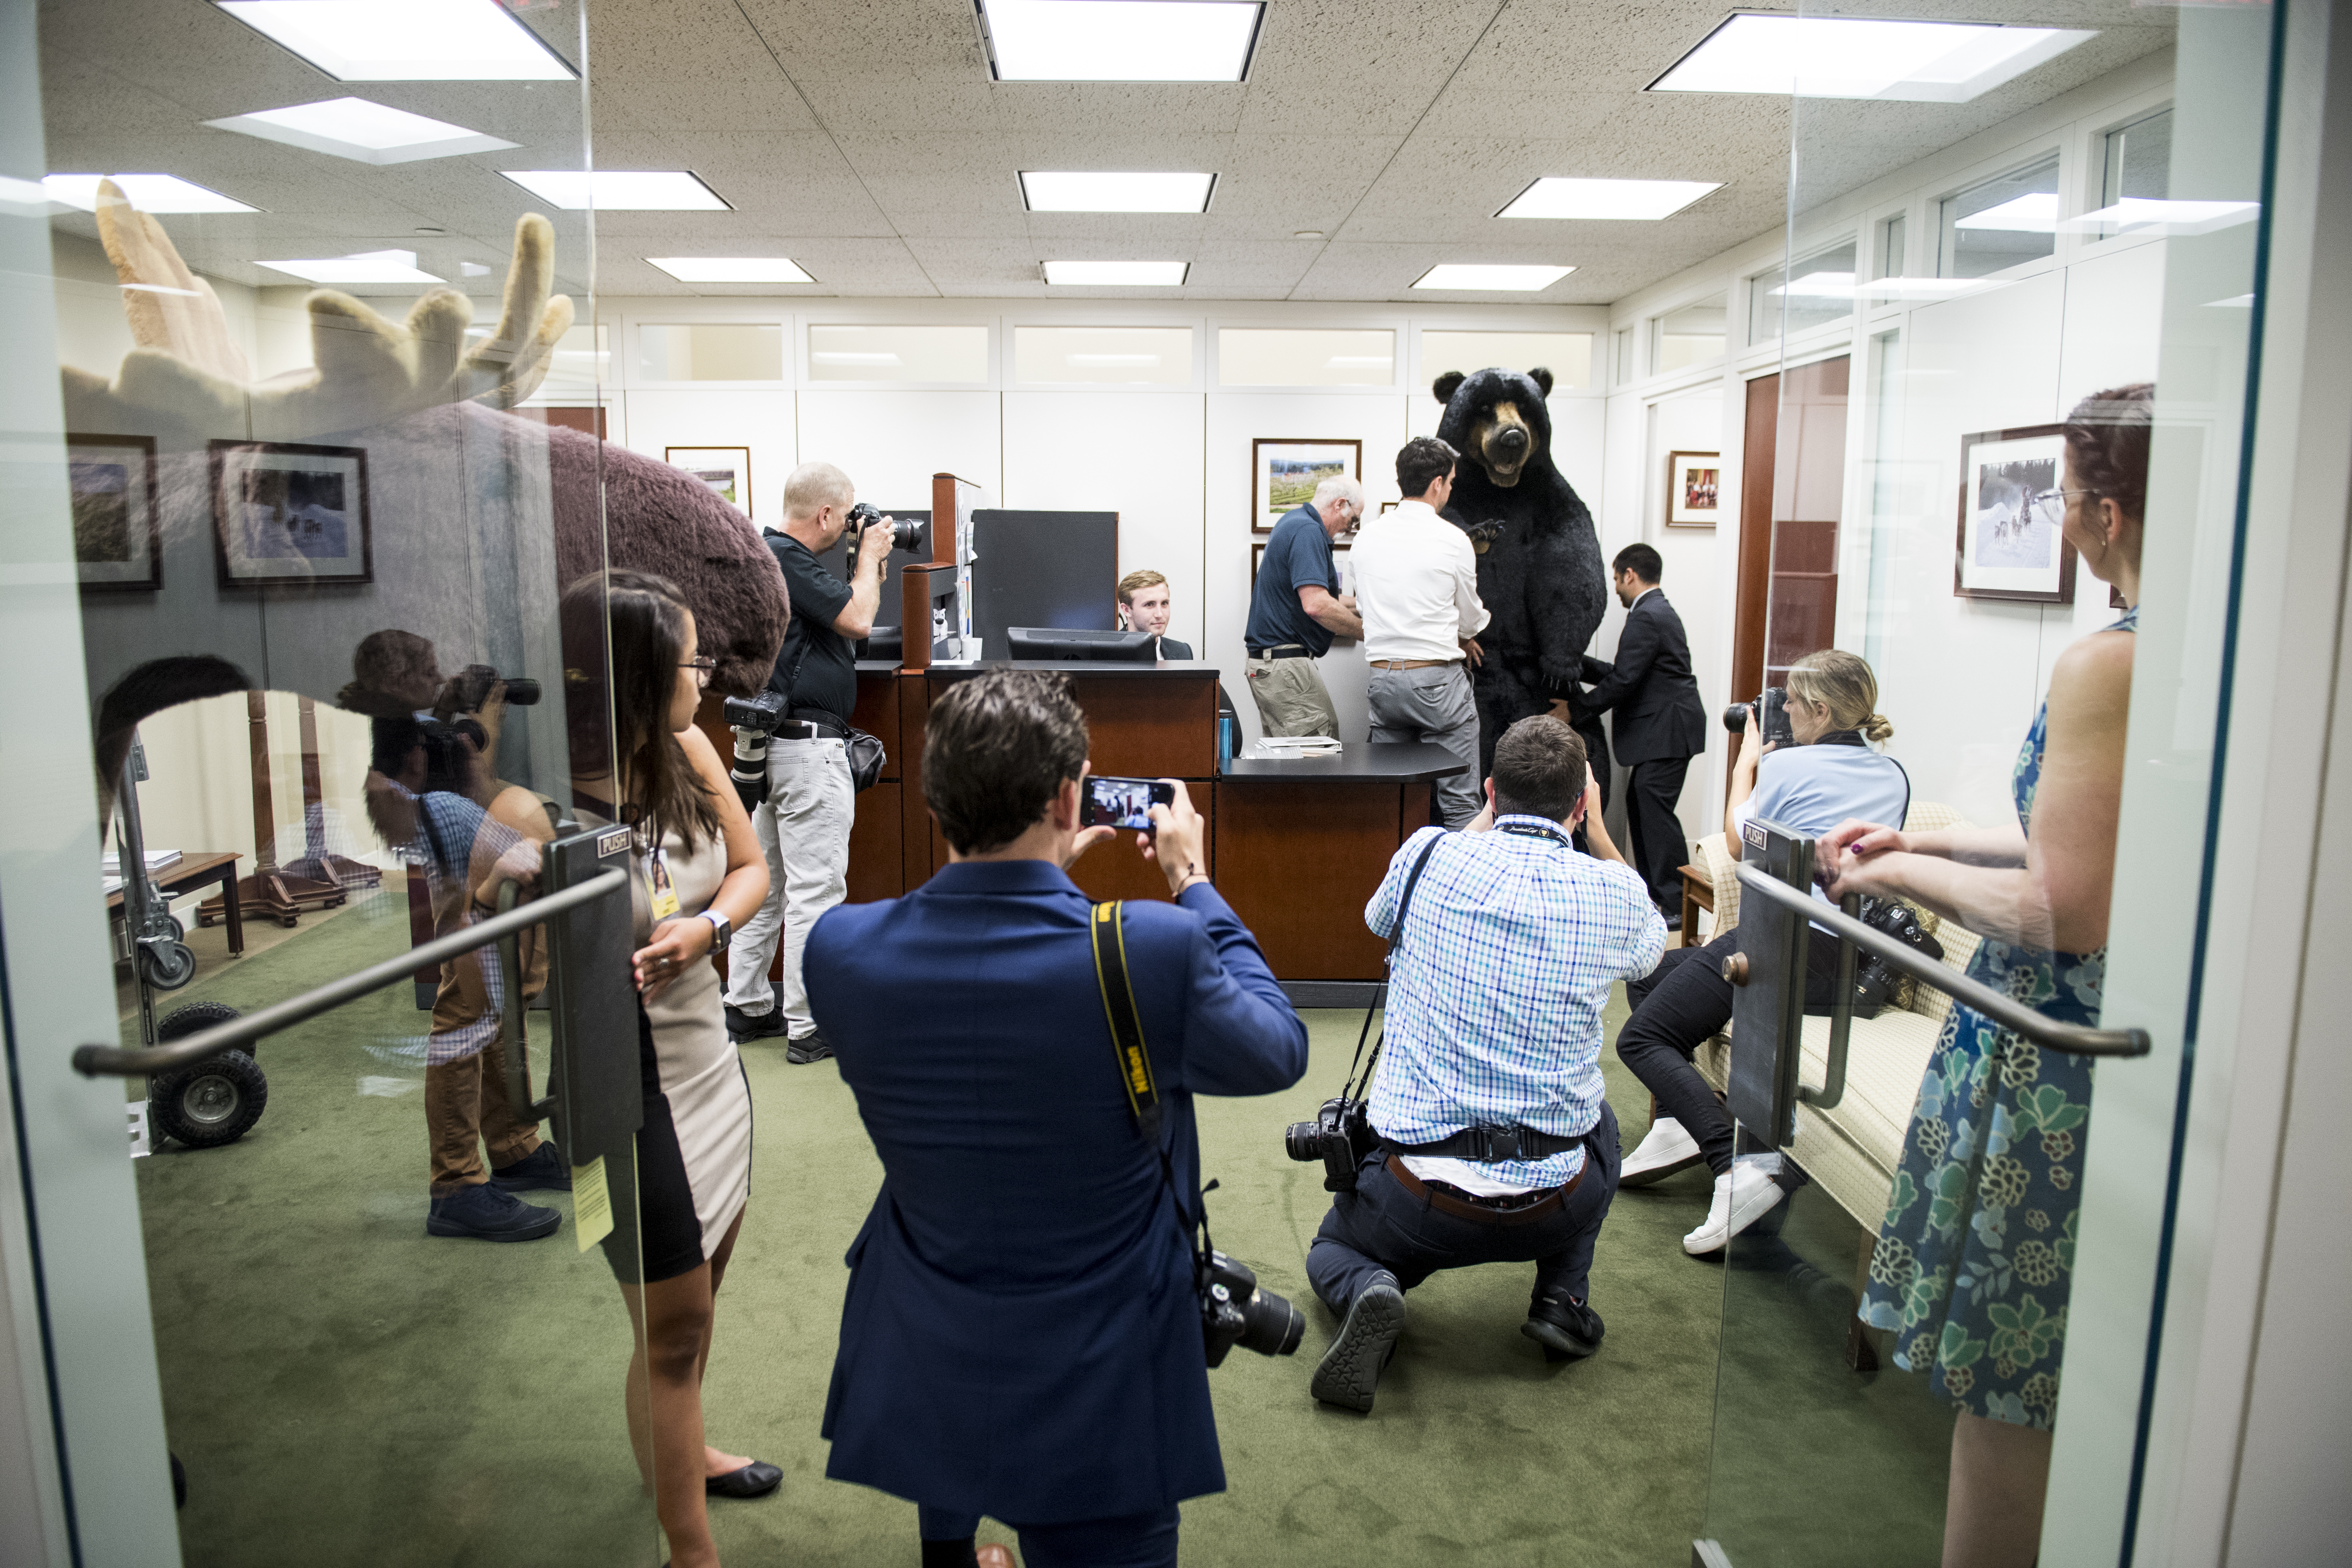 UNITED STATES - JUNE 4: News photographers take pictures as Max the Moose and Kodak the Bear are delivered to the office of Sen. Jeanne Shaheen, D-N.H., in the Hart Senate Office Building on Tuesday, June 4, 2019. The stuffed animals are brought to the Capitol every year for the Experience New Hampshire event, hosted by Sen. Jeanne Shaheen, D-N.H., which will be held Wednesday evening on Capitol Hill. (Photo By Bill Clark/CQ Roll Call)